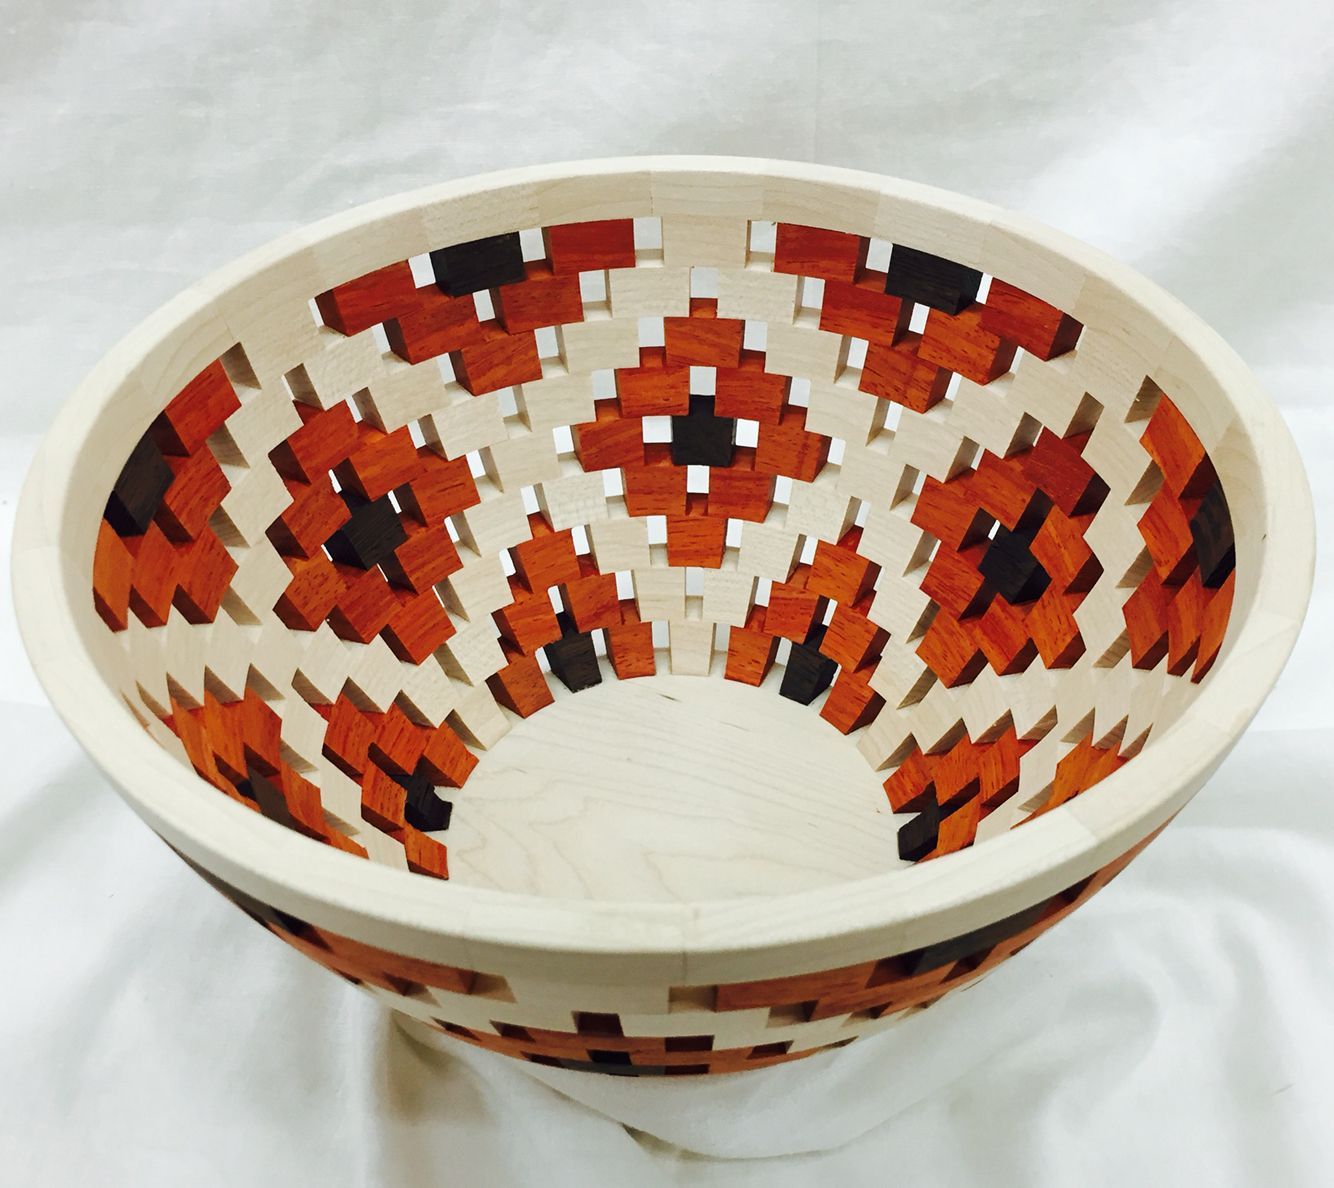 Pin By Lorna Macdougall On Garage Plans: Open Segmented Woodturning